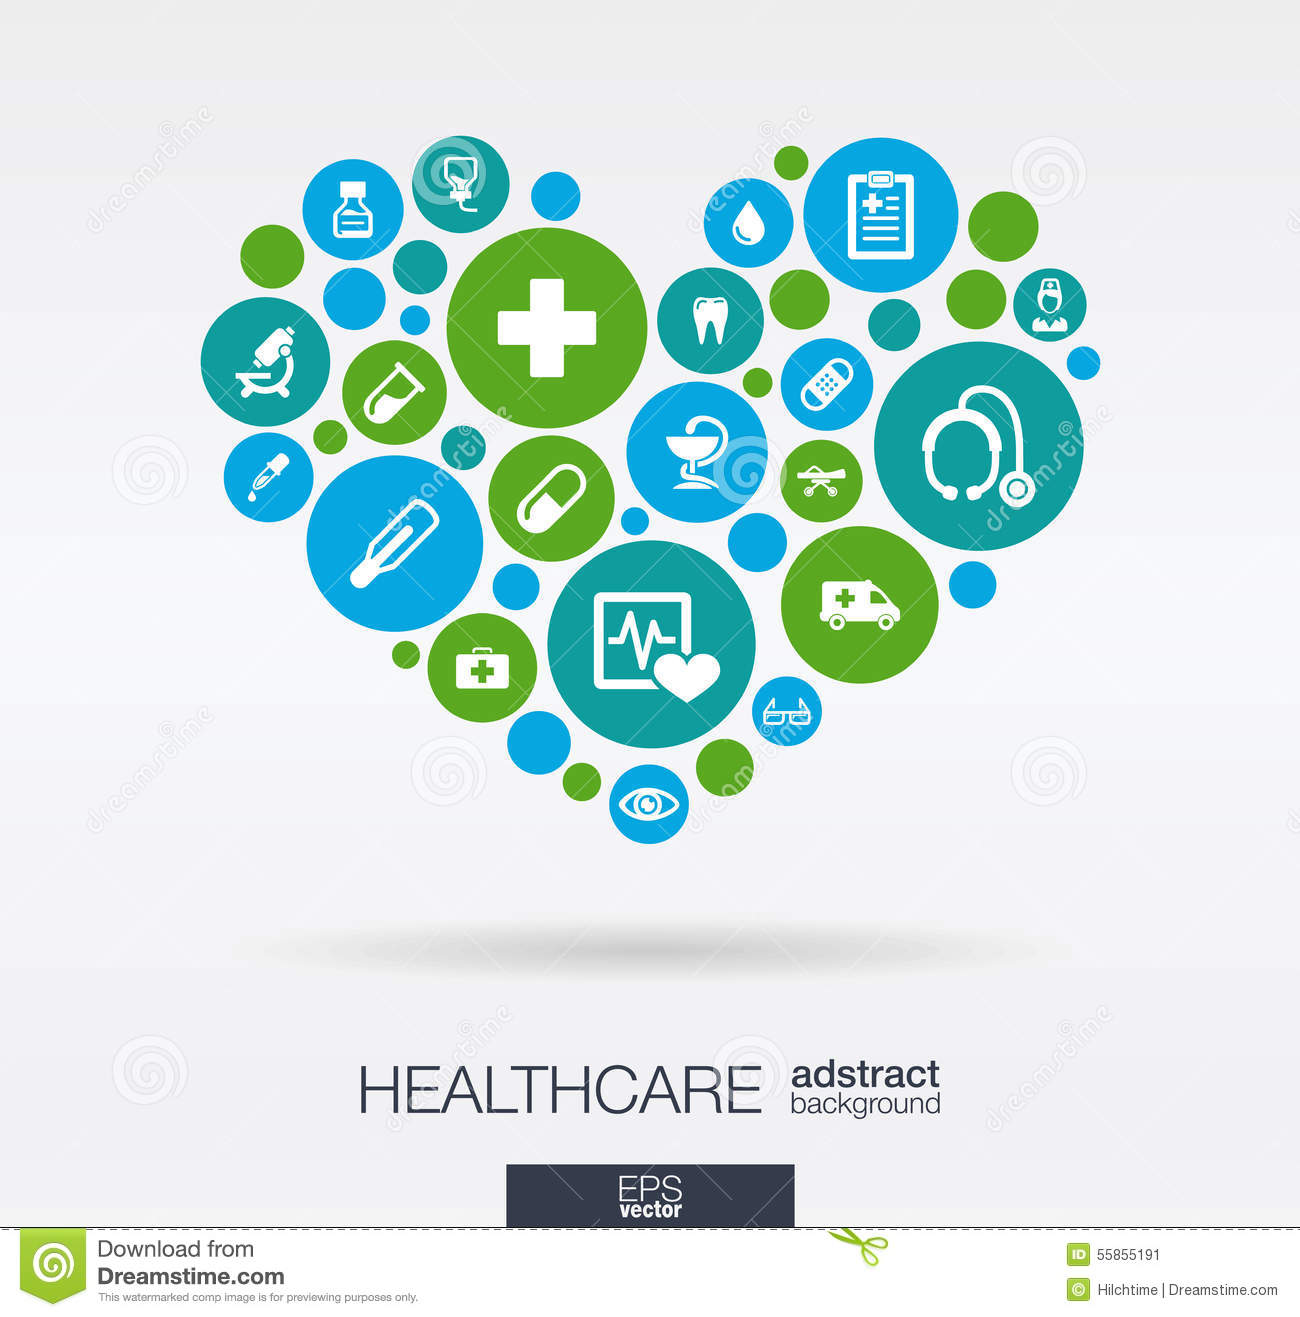 color-circles-flat-icons-heart-shape-medicine-medical-health-cross-healthcare-concepts-abstract-background-55855191.jpg